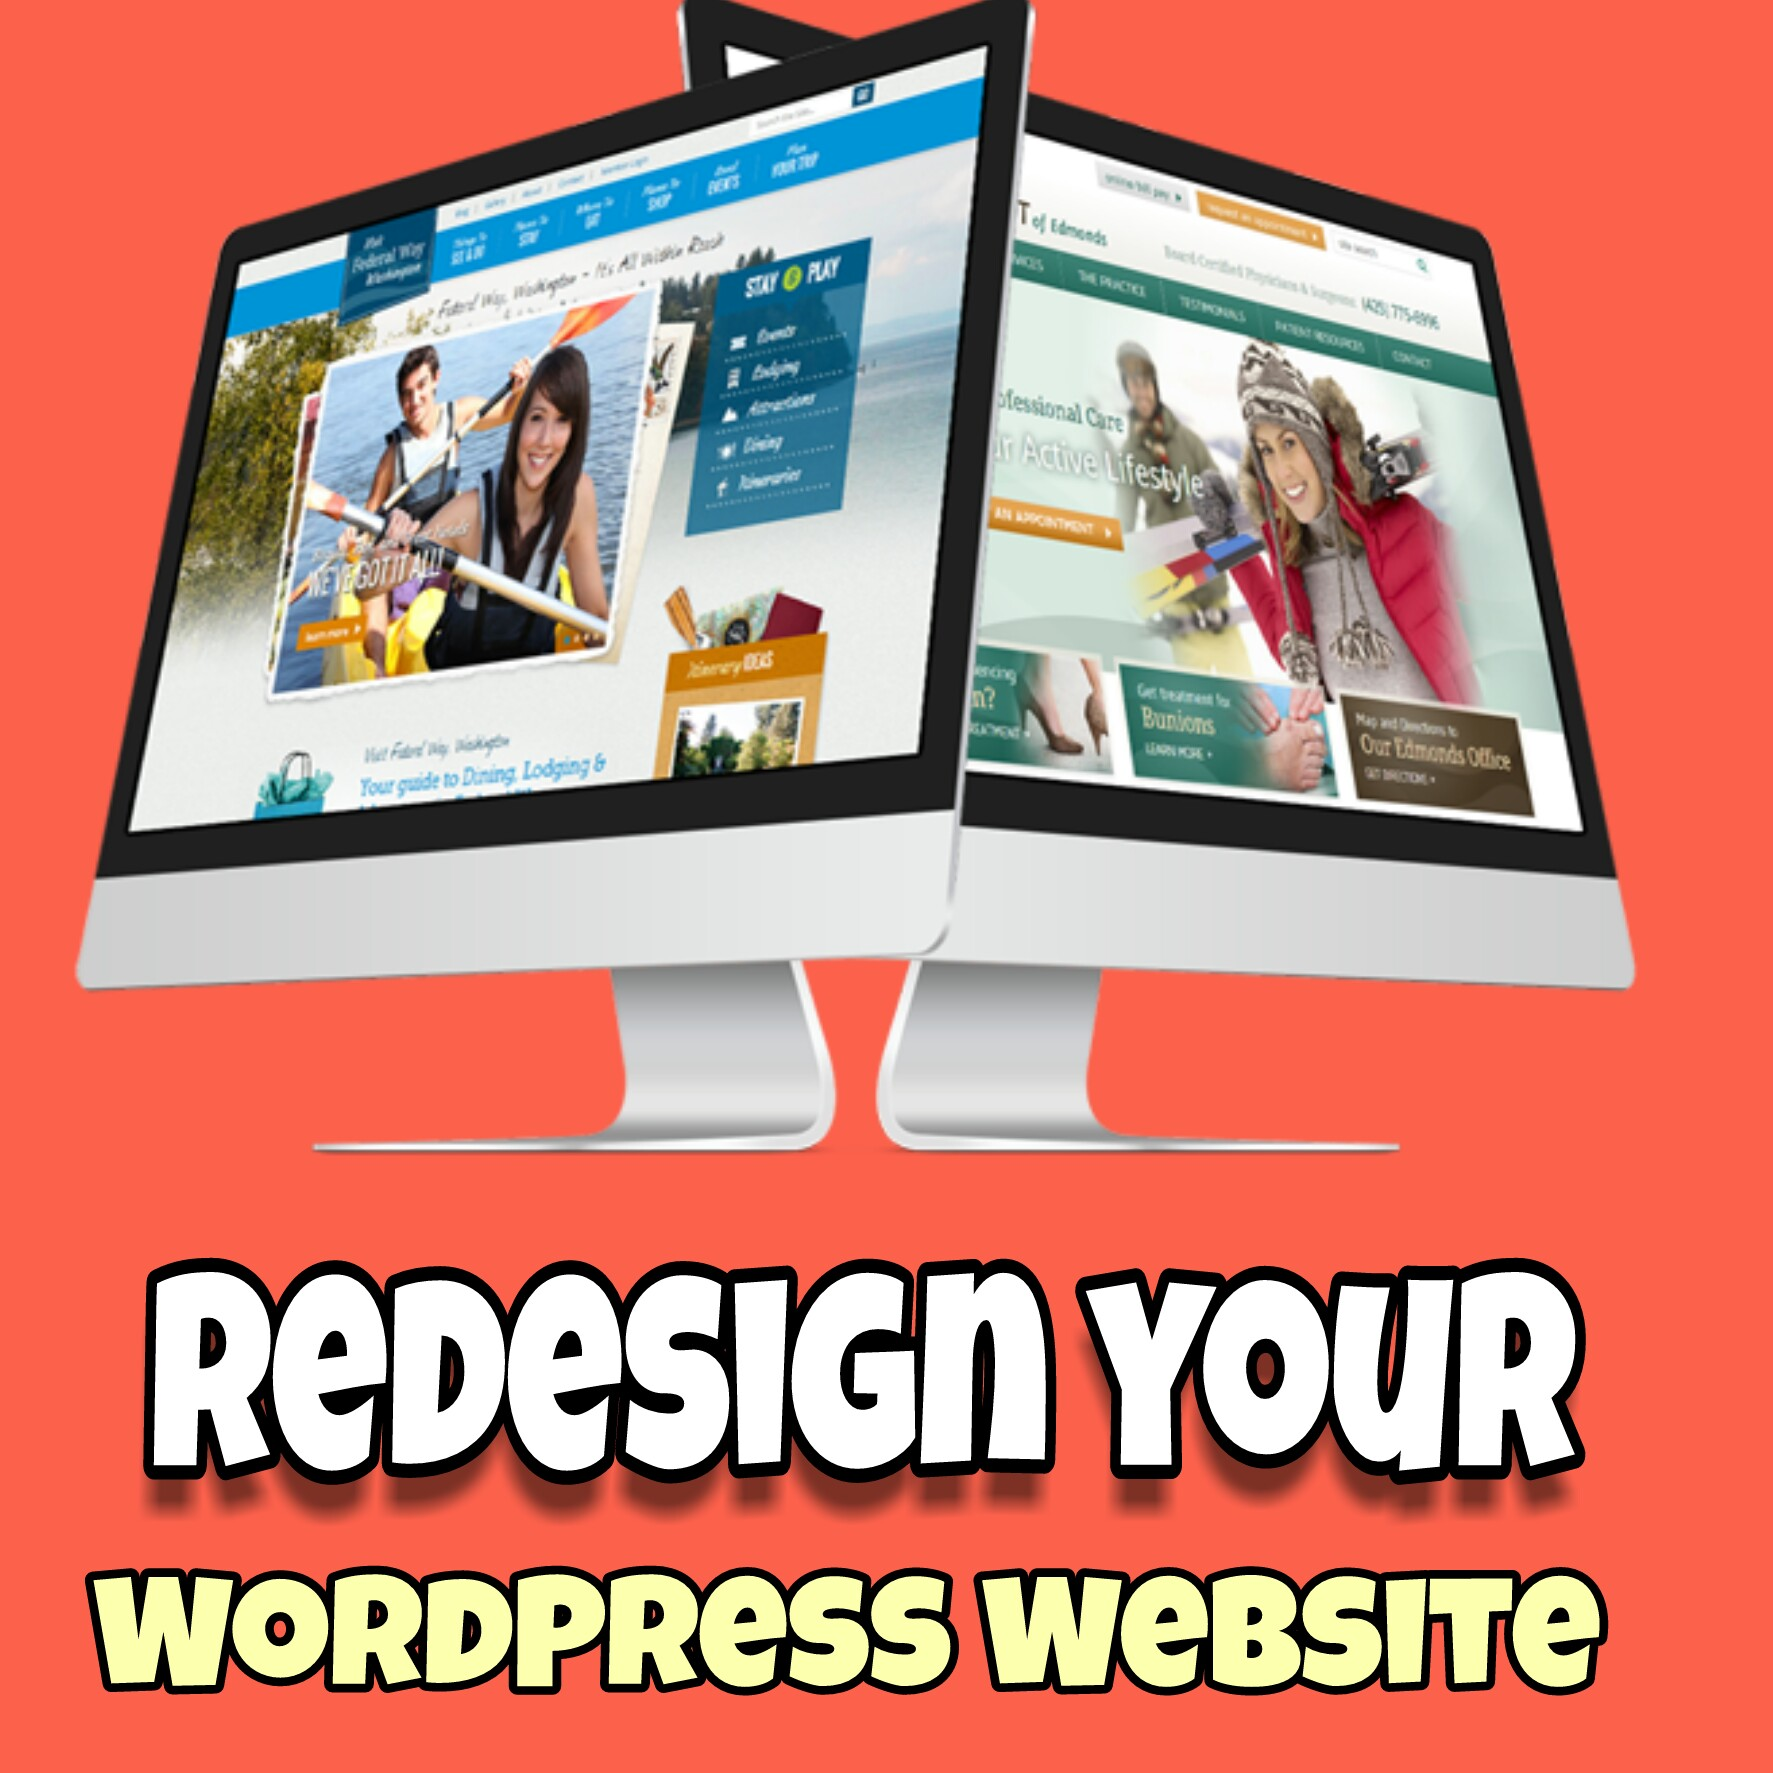 Design wordpress website professionally